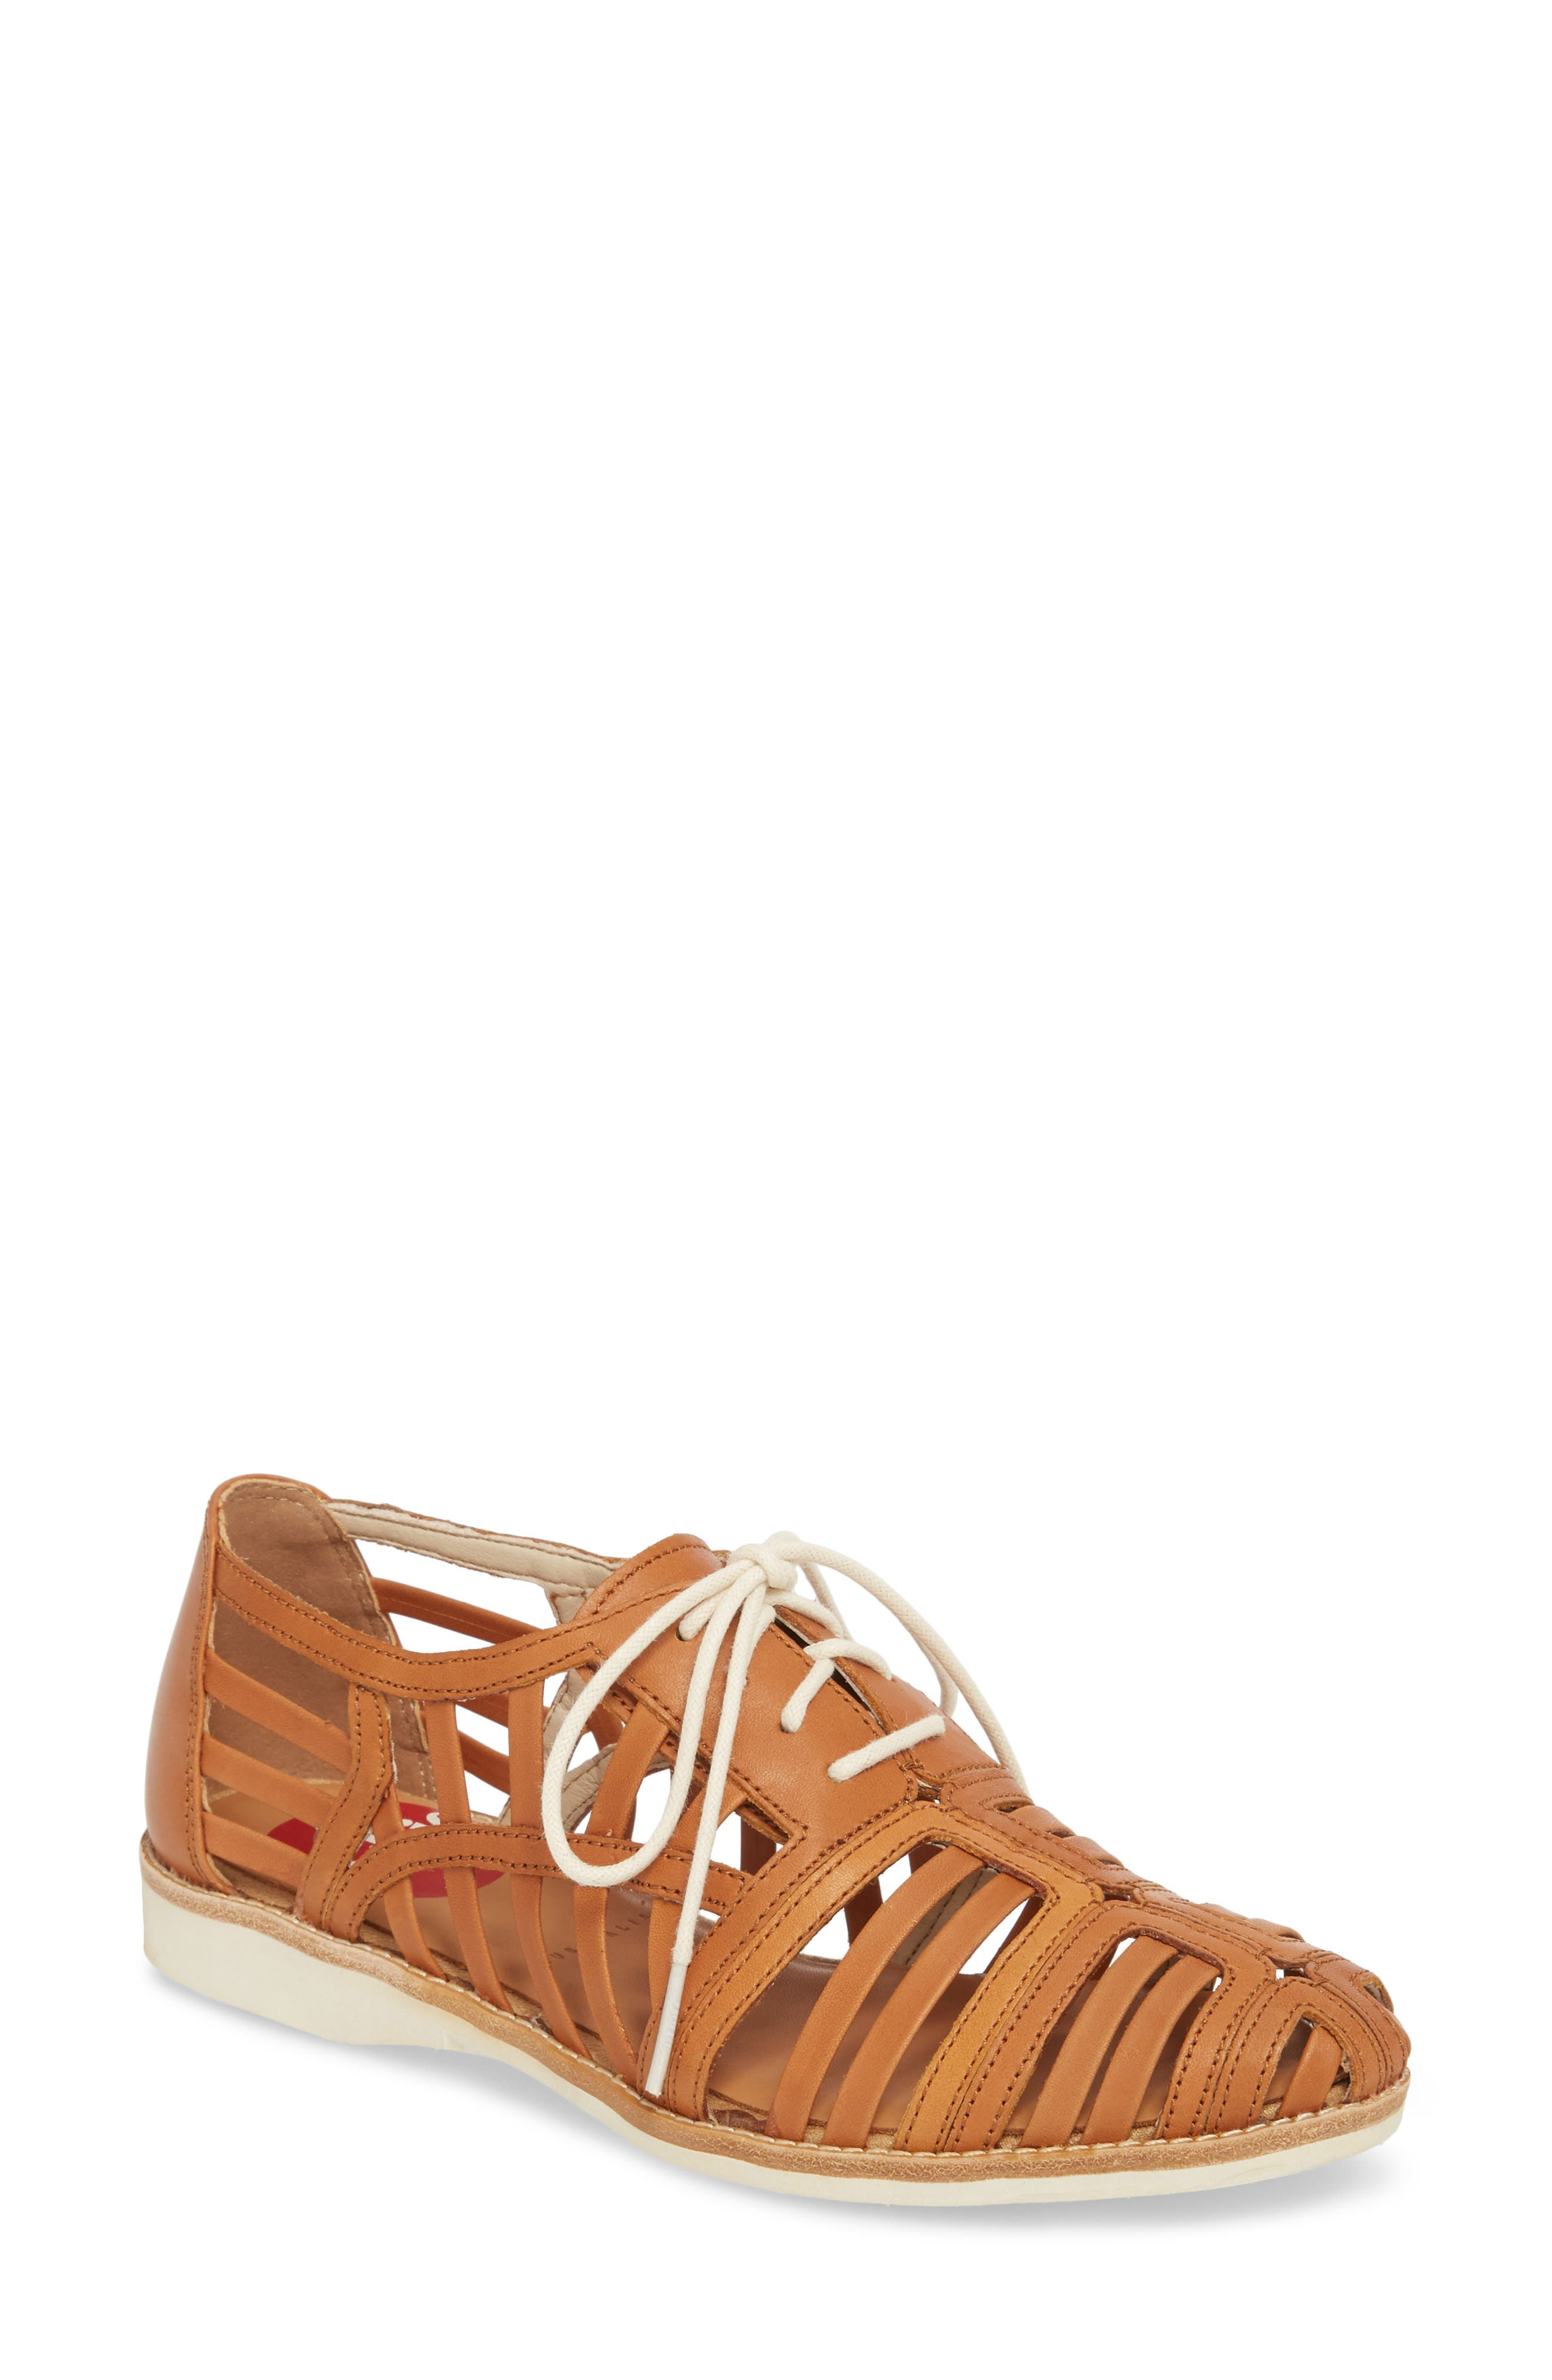 Cage Derby,                         Main,                         color, TAN LEATHER